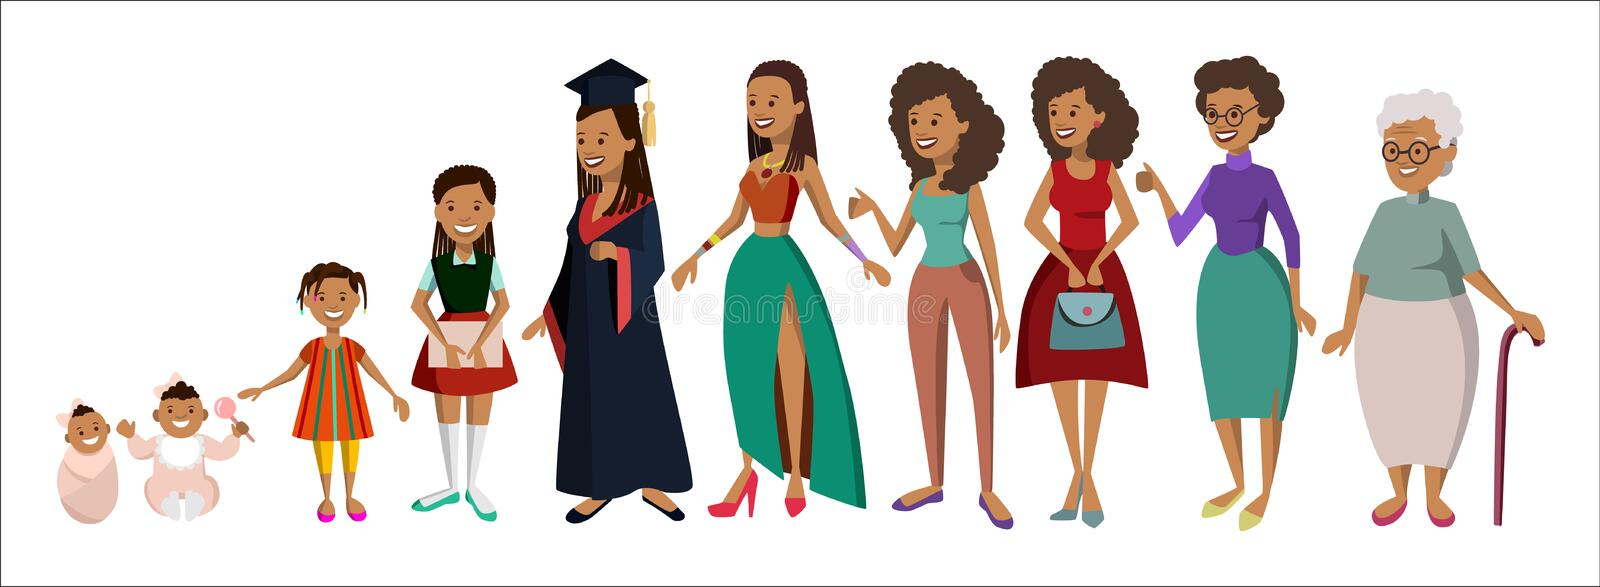 Woman life stages. royalty free illustration